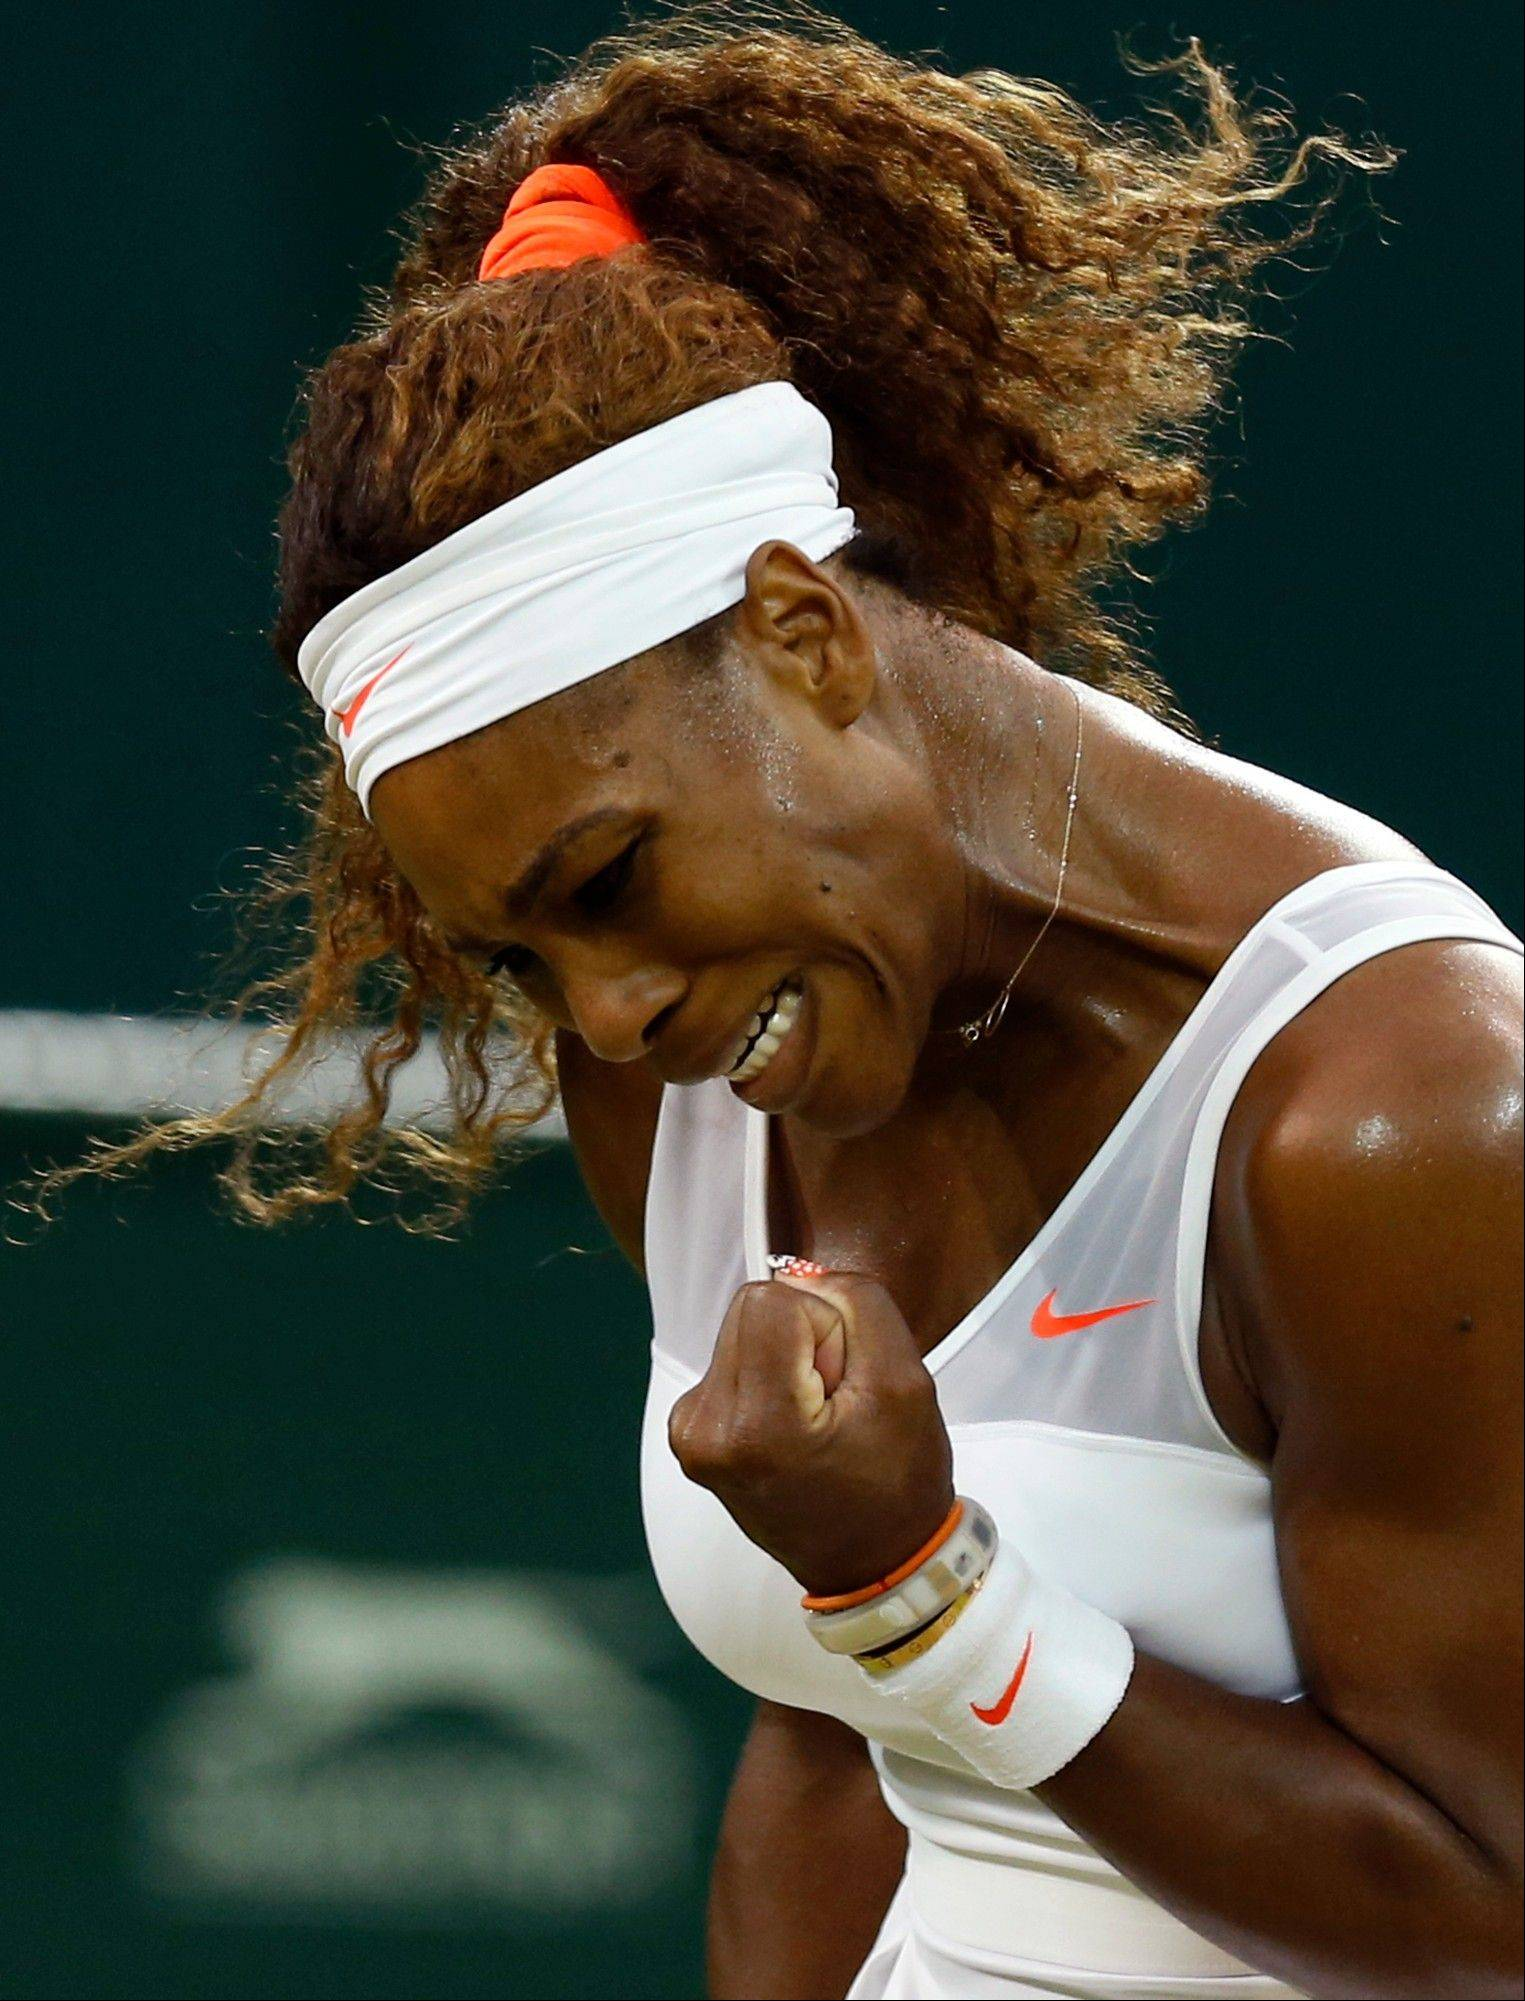 Serena Williams of the United States reacts after winning a point as she plays Kimiko Date-Krumm of Japan during their Women's singles match at the All England Lawn Tennis Championships in Wimbledon, London, Saturday, June 29, 2013. (AP Photo/Sang Tan)